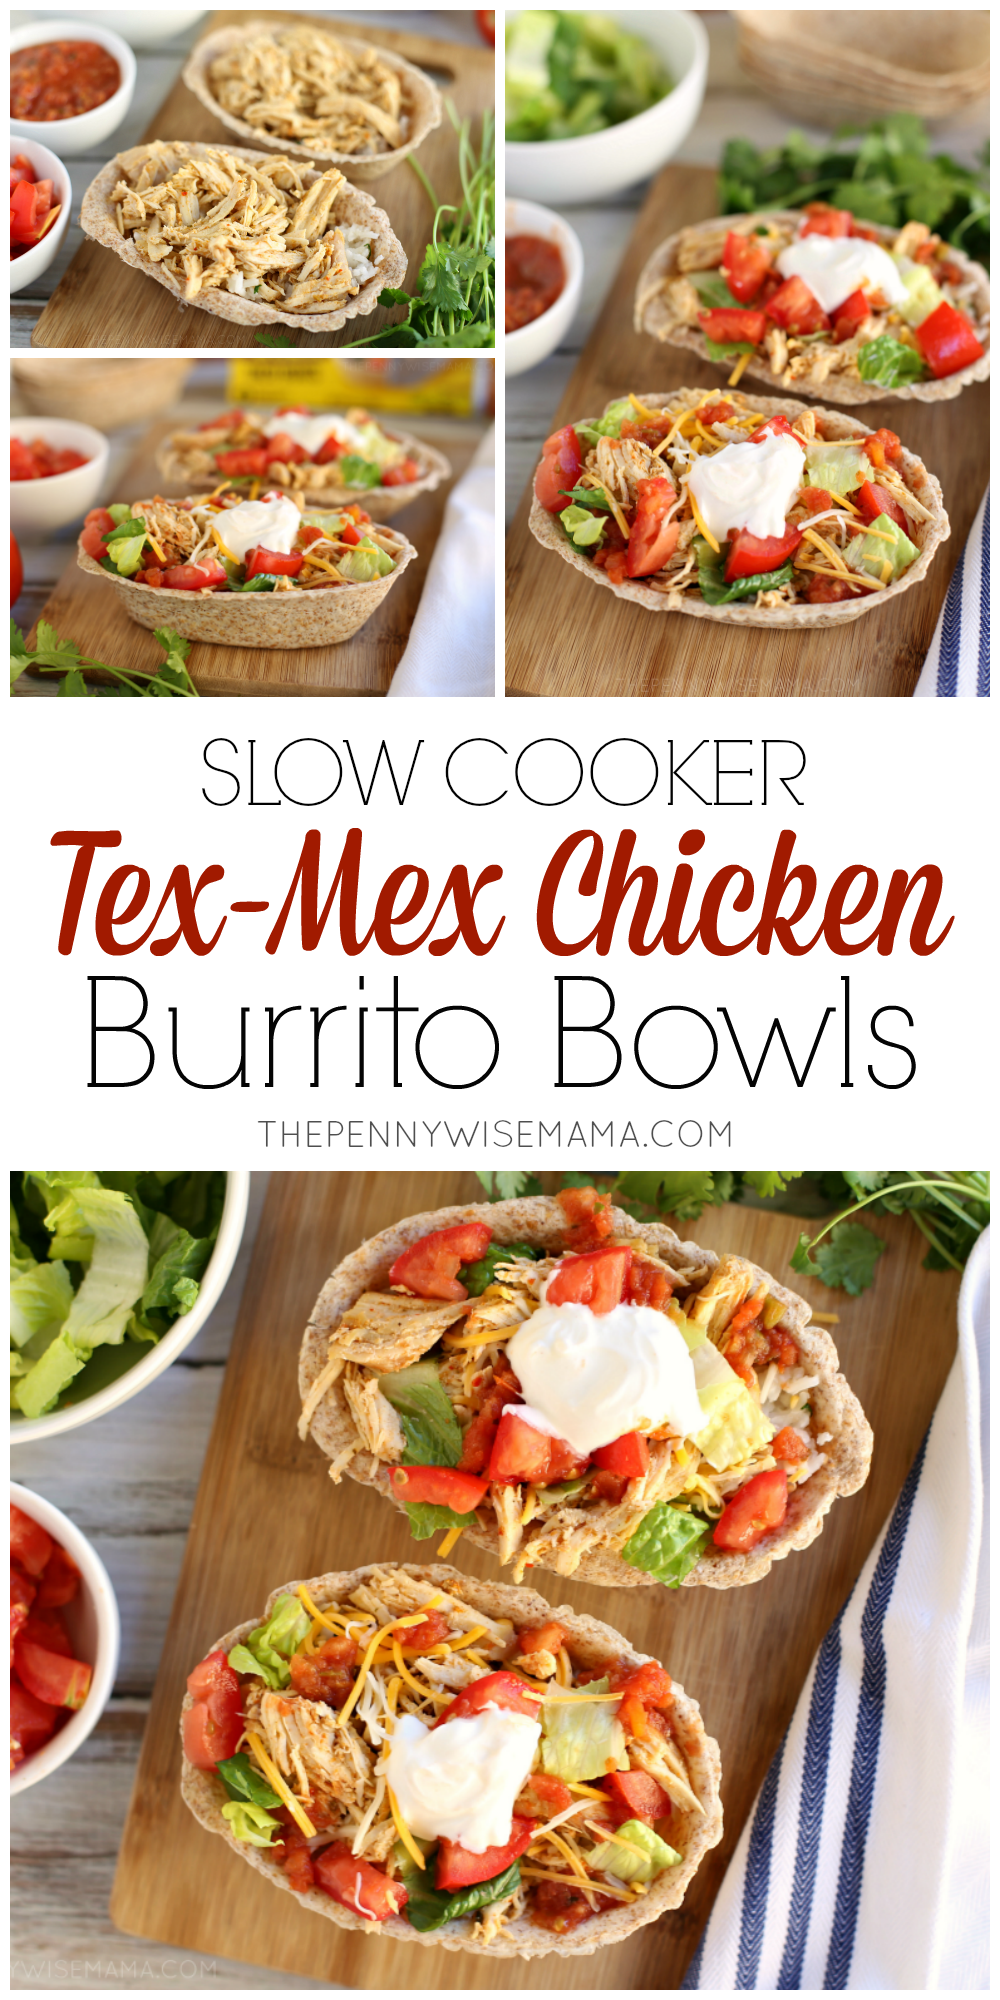 Slow Cooker Tex-Mex Chicken Burrito Bowls - The PennyWiseMama